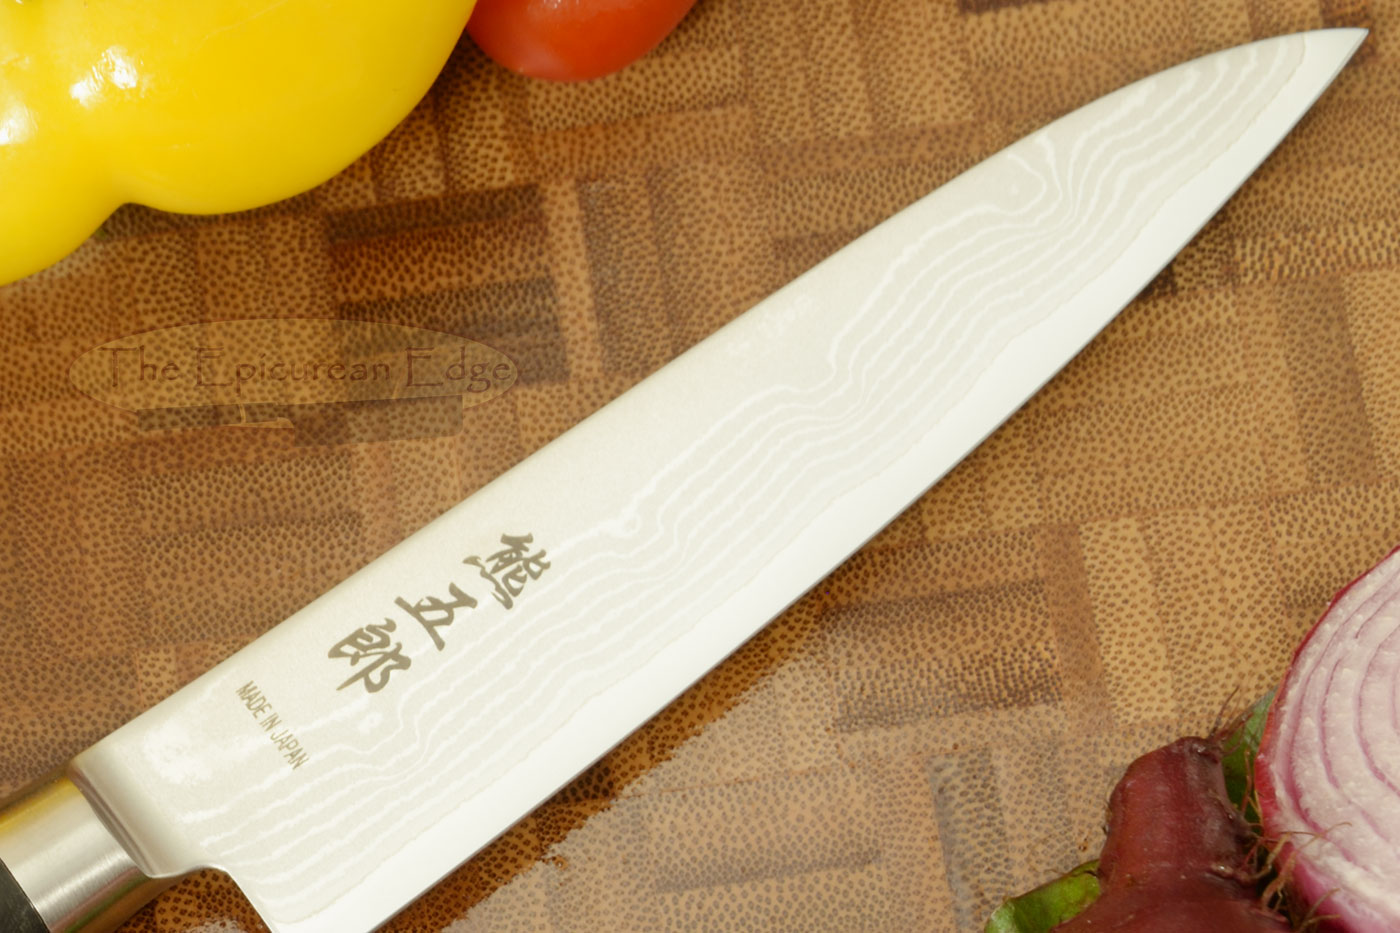 Kumagoro Suminagashi, San Mai Damascus Paring Knife - Petty Knife - 4 3/4 in. (120mm)